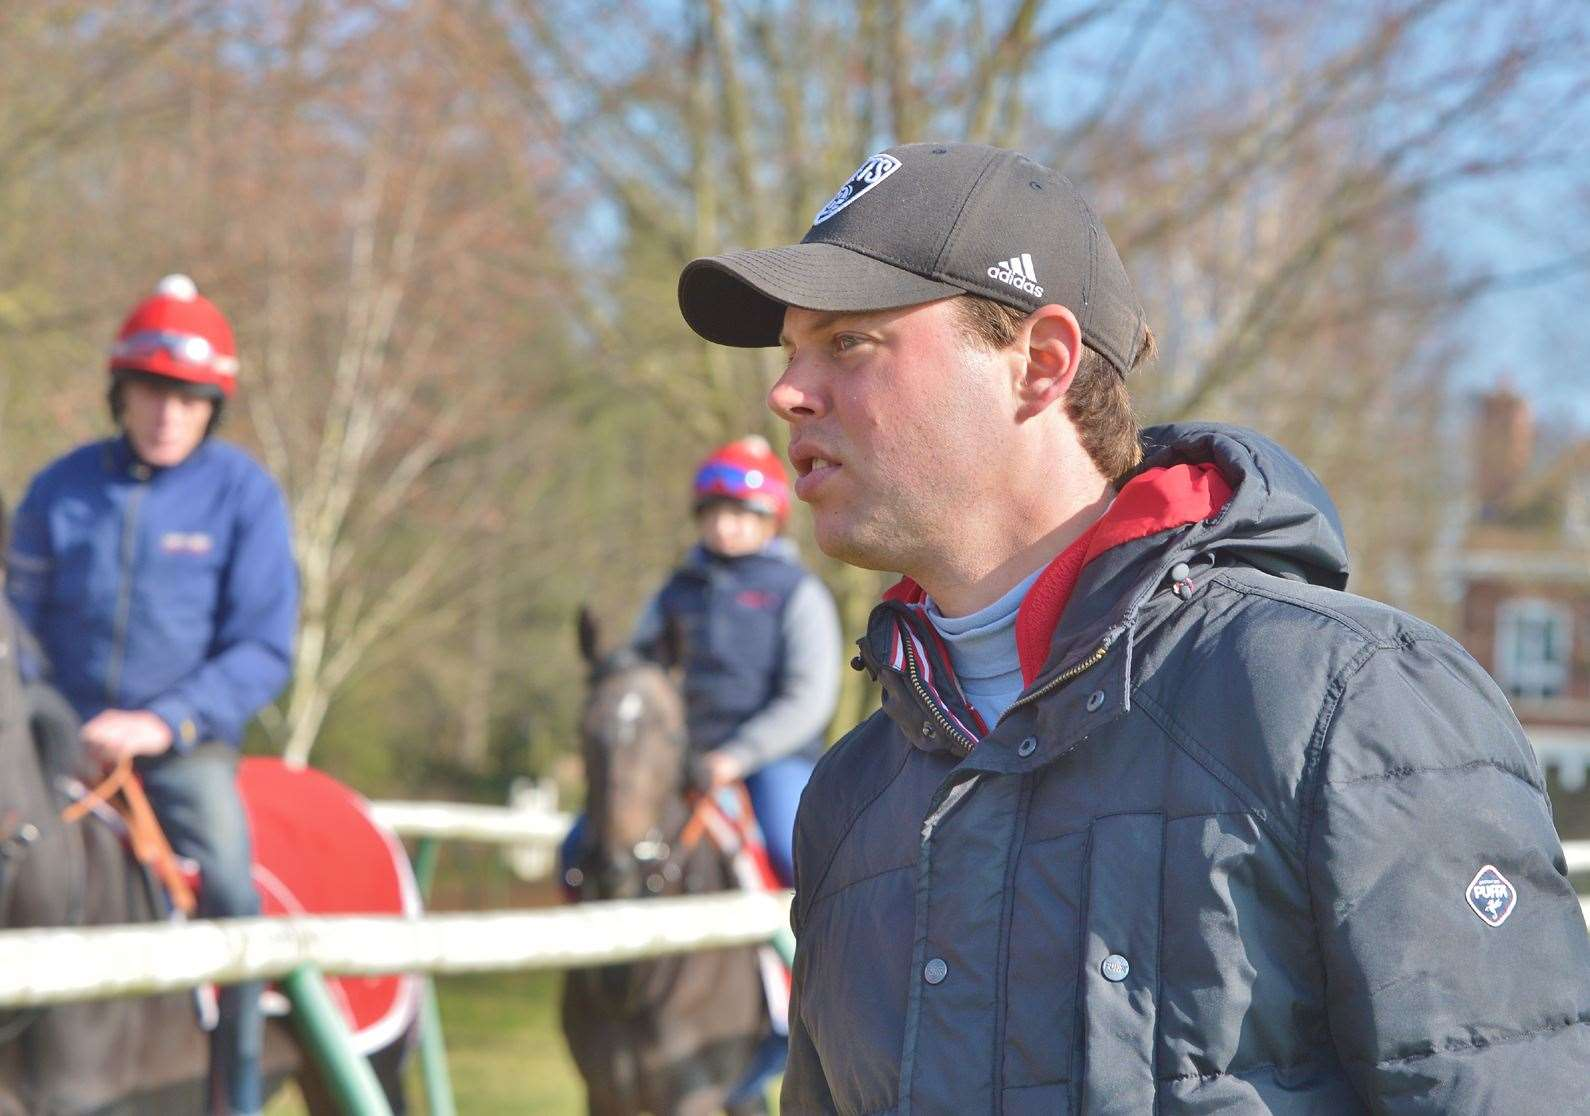 Newmarket-based trainer Charlie Fellowes